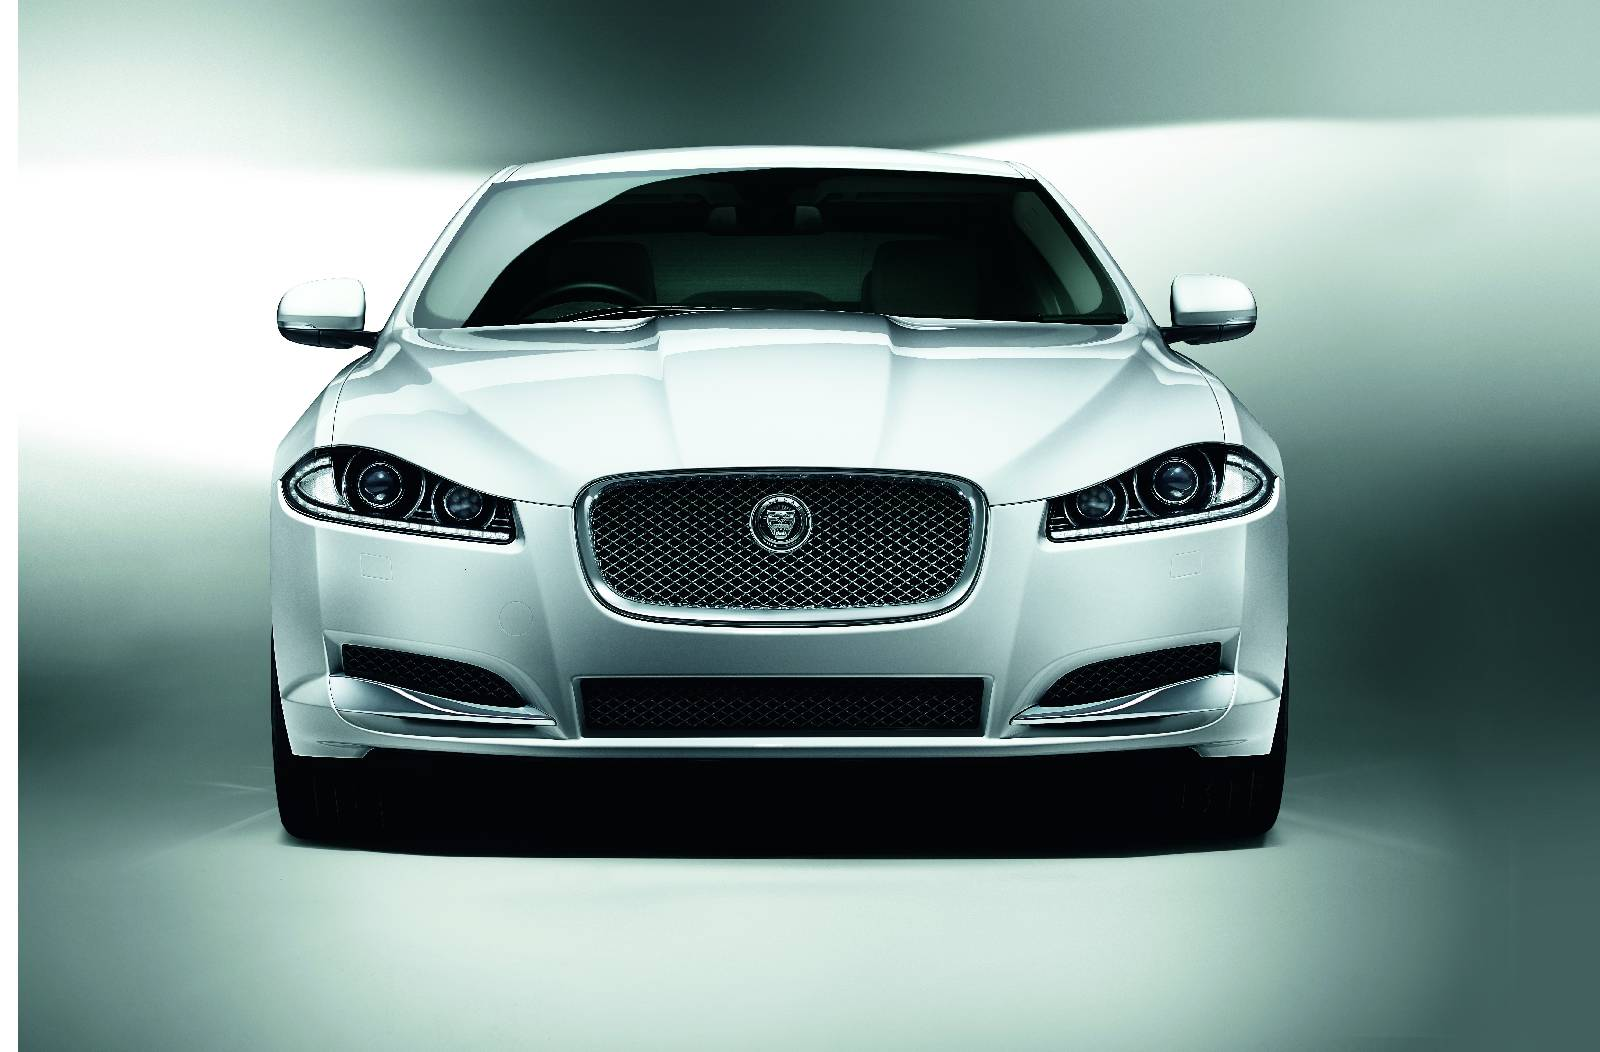 Jaguar Has Revealed The 2014 XF That Comes With The New And Efficient  Four Cylinder, 2.2 Litre Diesel 163PS ECO2 Engine. The Car Will Be  Available In Both ...